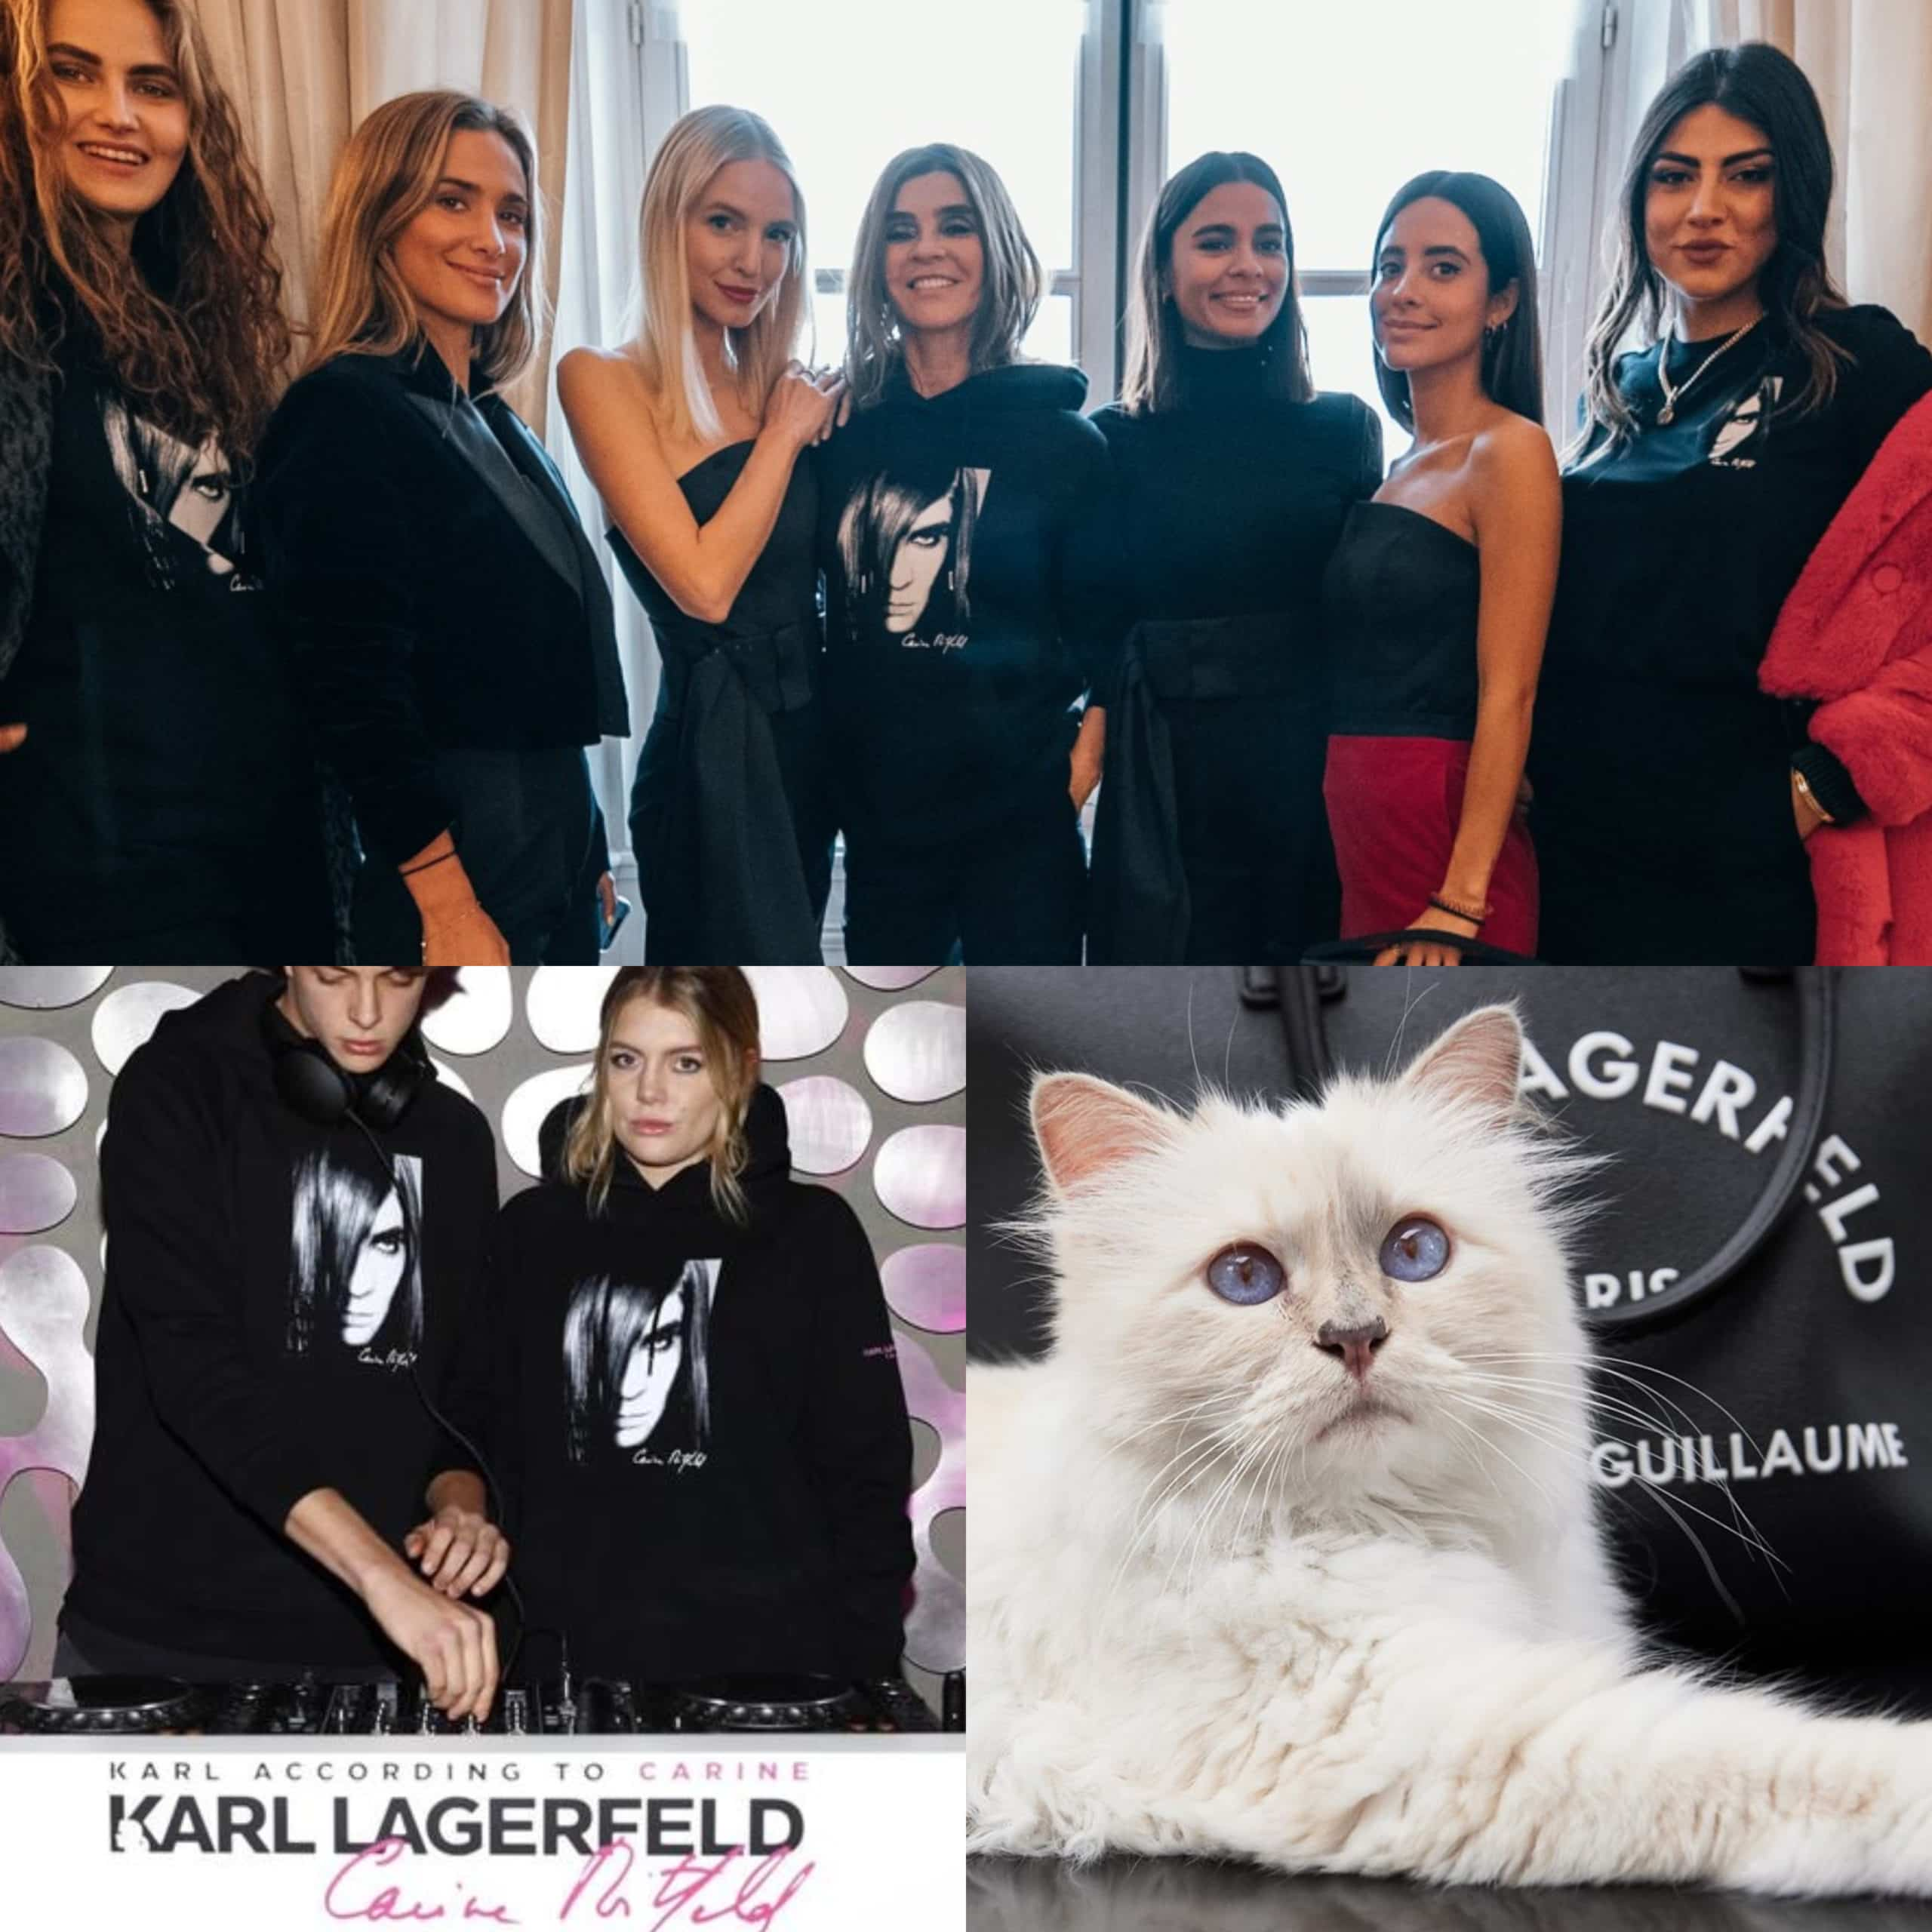 Karl Lagerfeld according to Carine Roitfeld